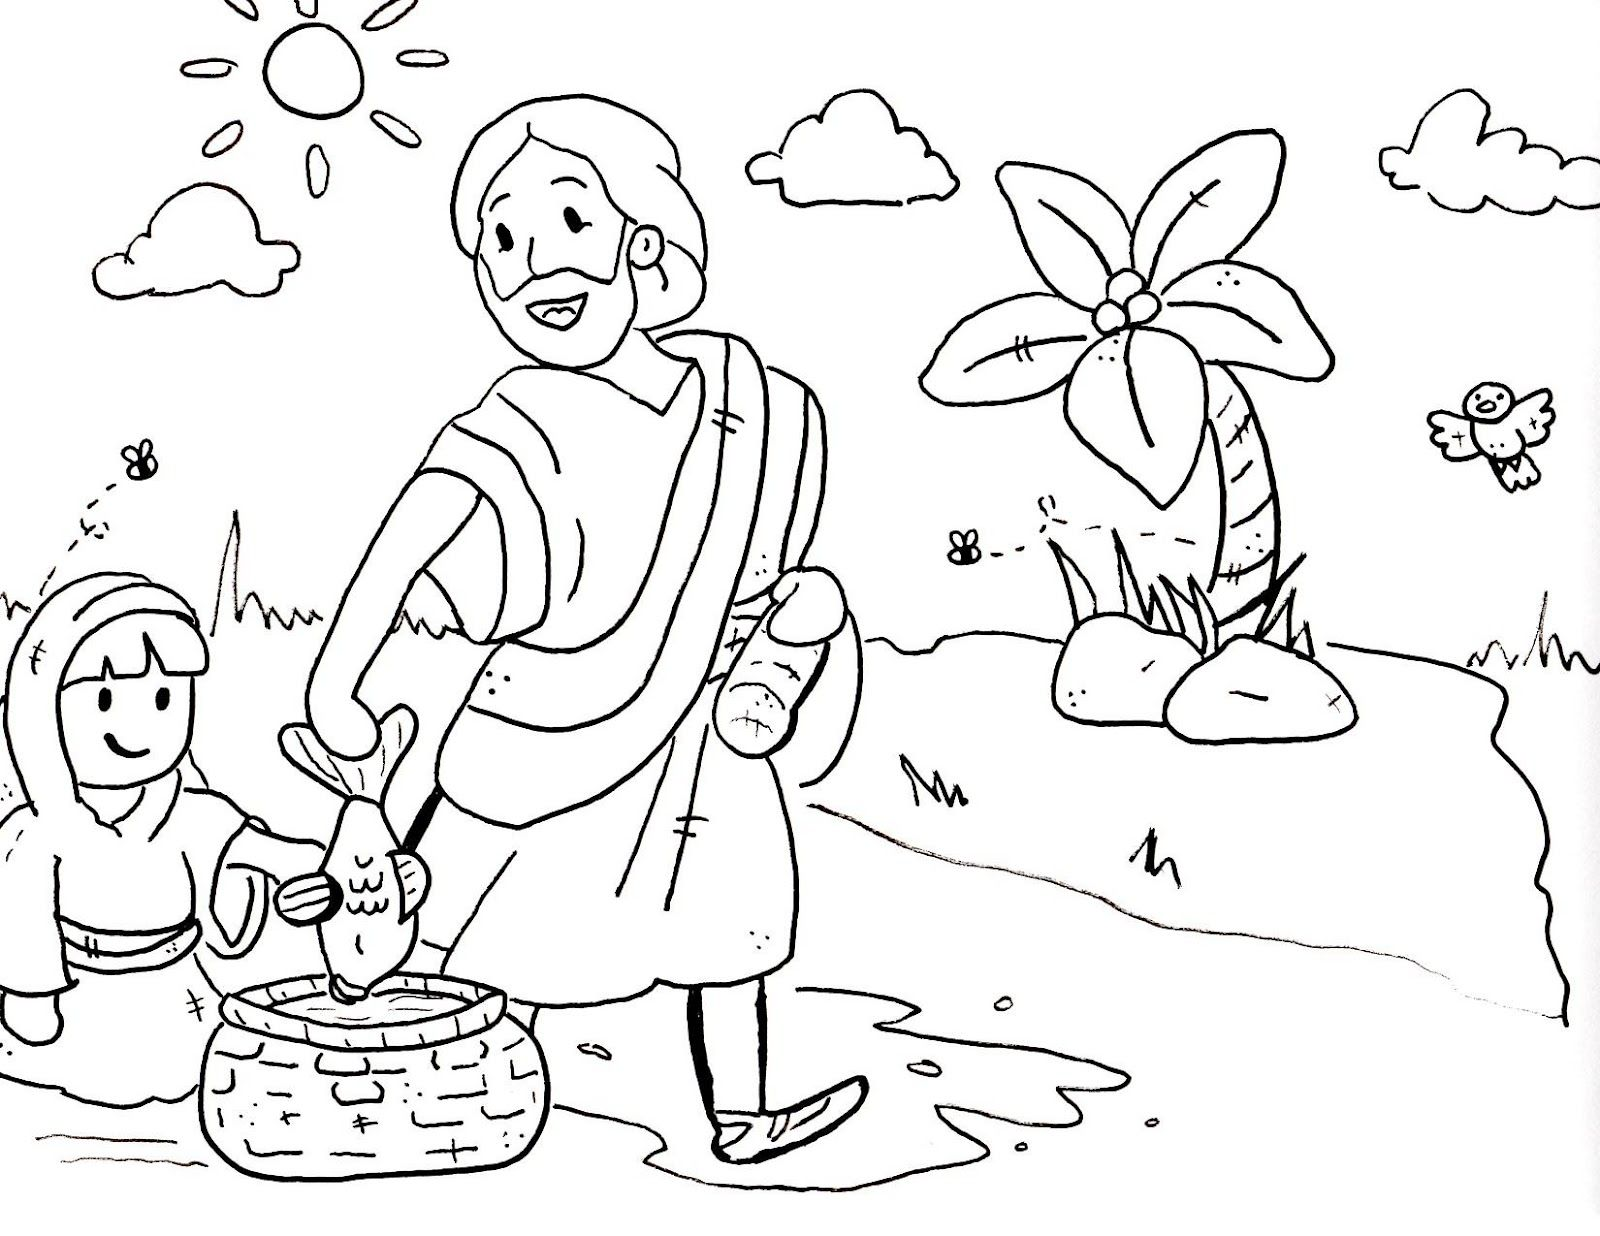 Printable coloring pages about the bible - Spring Bible Coloring Pages For Kids Free Print Texas Life